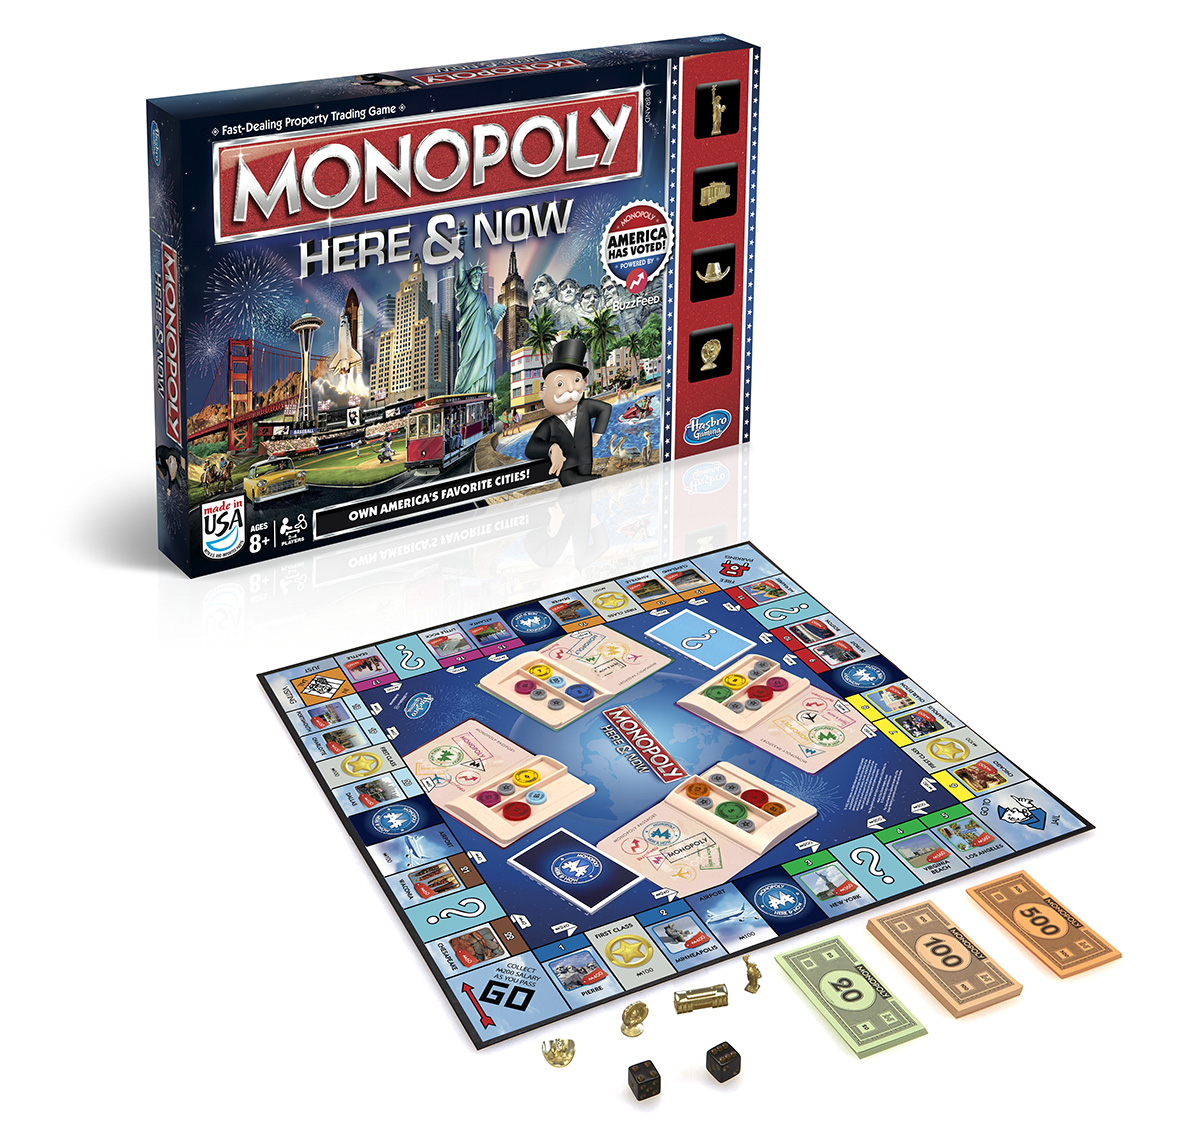 monopoly boston property